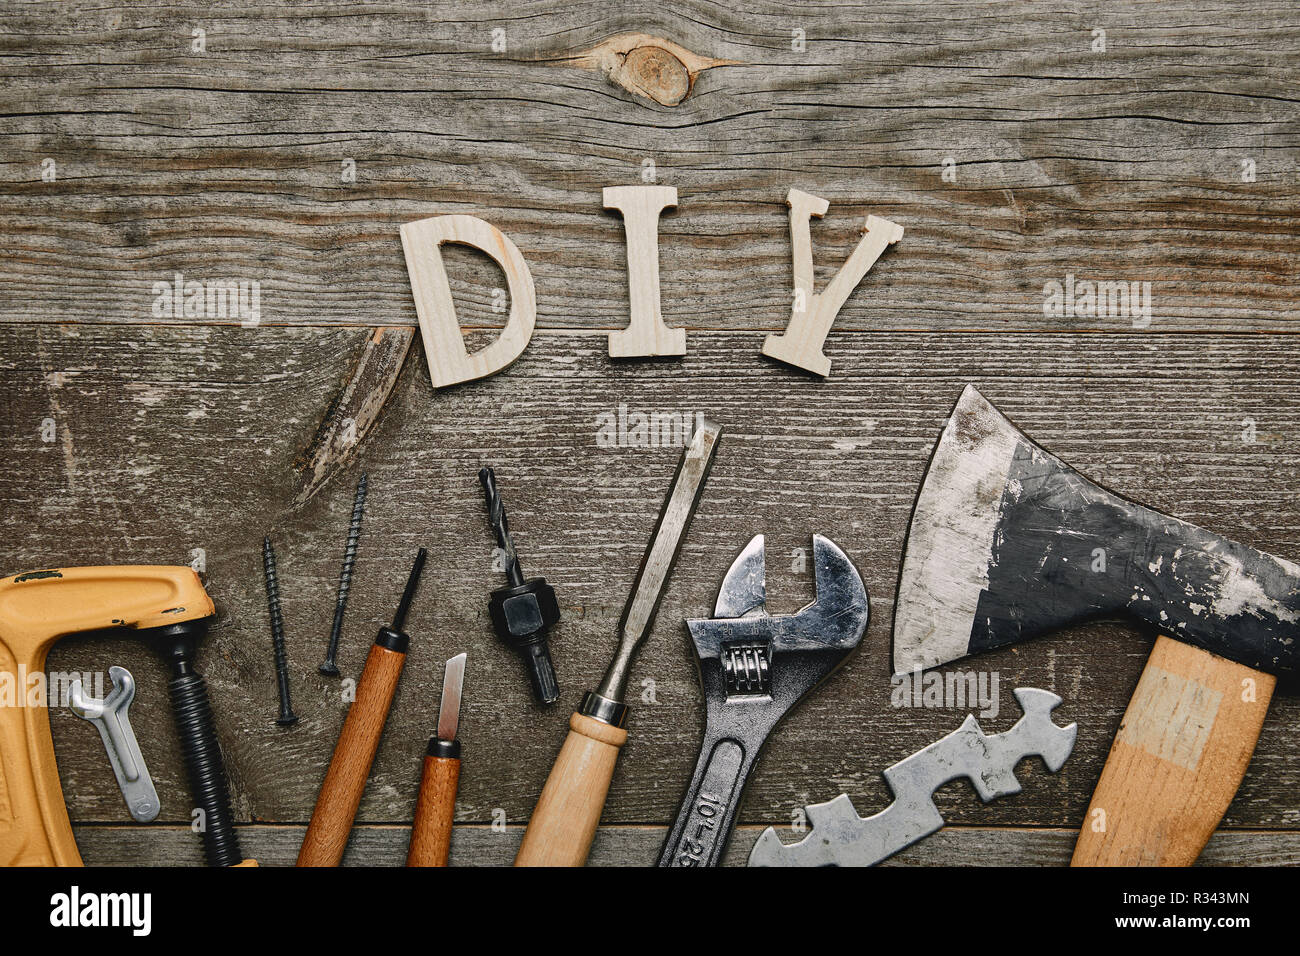 Flay Lay With Different Carpentry Tools And Diy Sign On Wooden